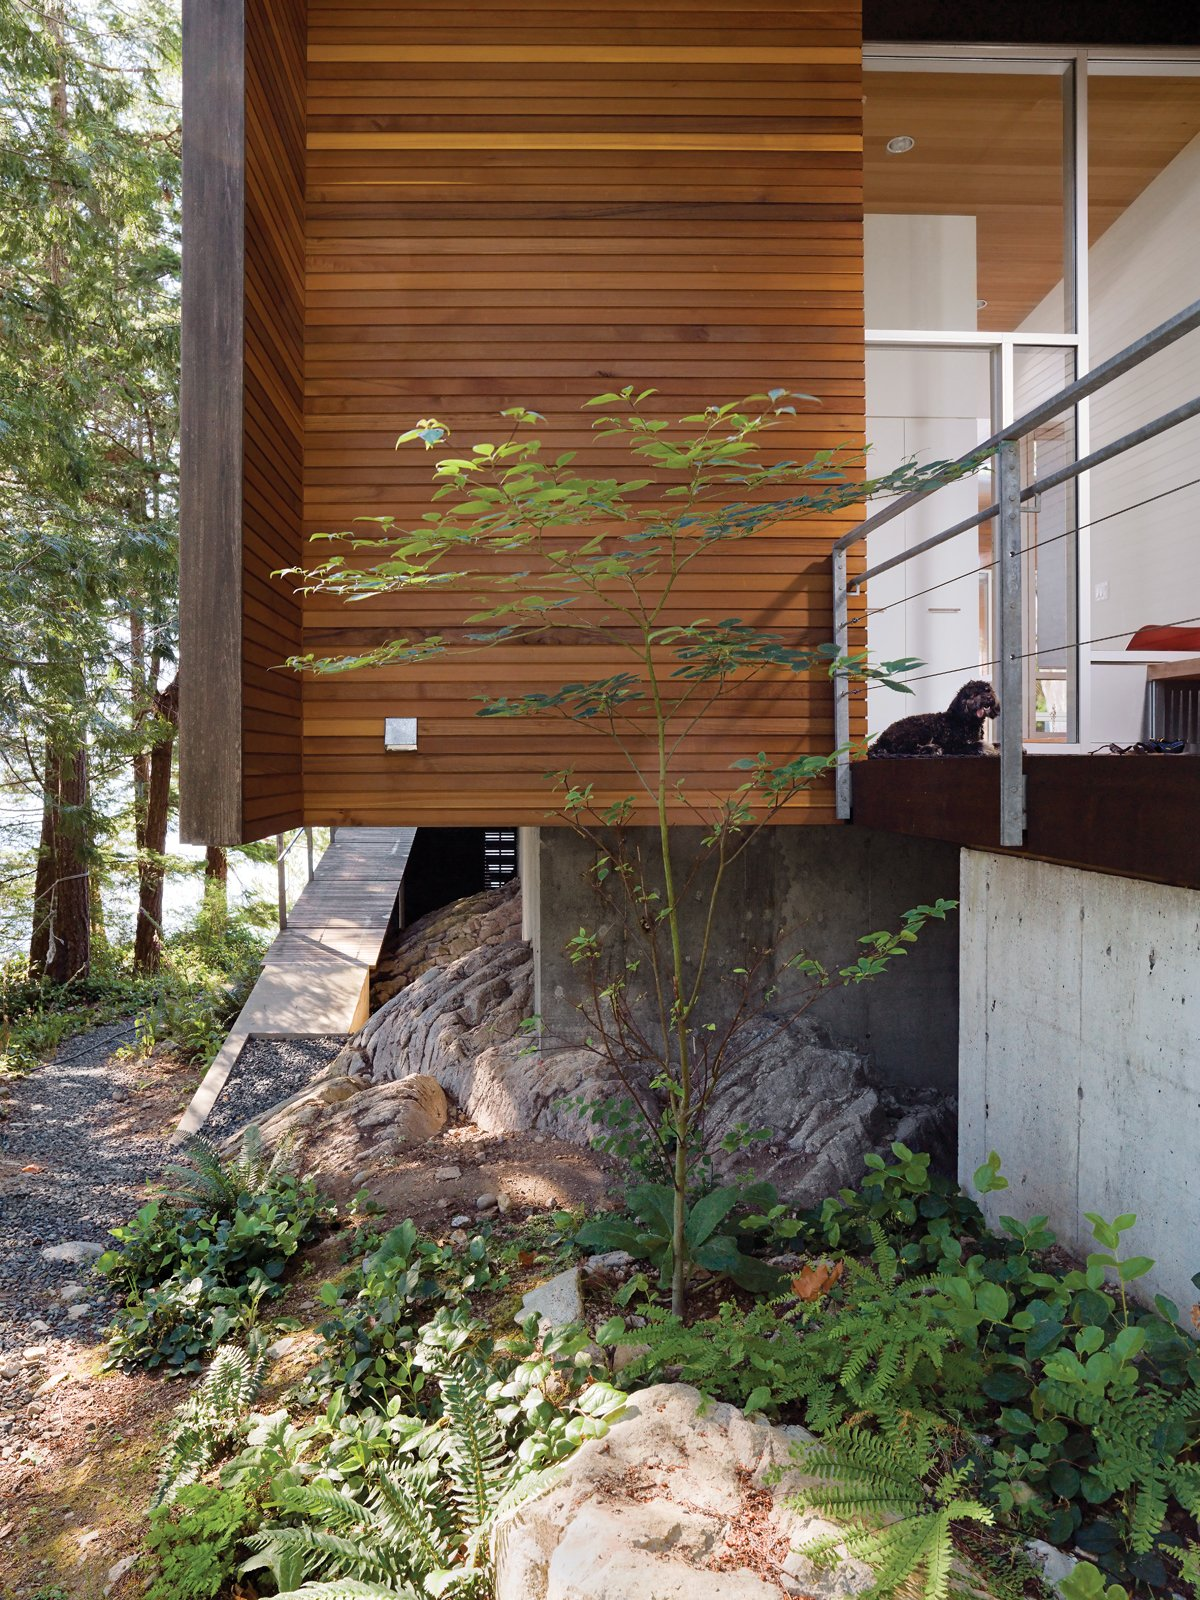 Outdoor, Walkways, Boulders, Trees, Shrubs, and Side Yard The cantilevered main floor creates space for bracken fern and other indigenous vegetation to flourish.  Photo 9 of 9 in When Living on the Edge is Super Comfortable